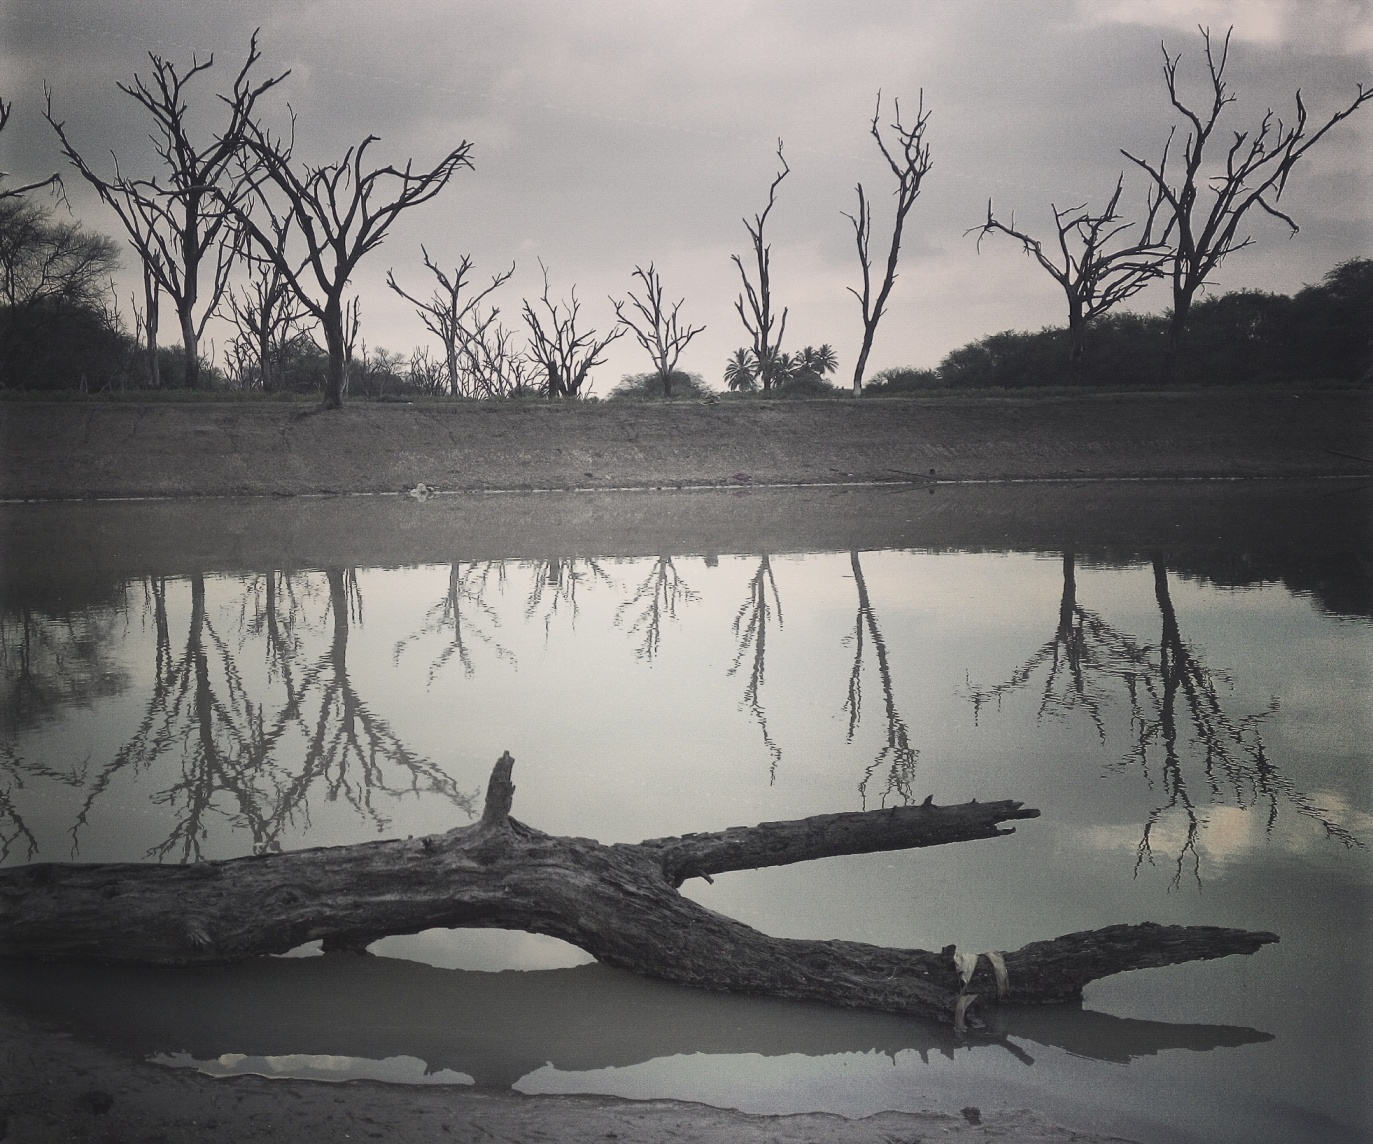 Dried trees in a city lake